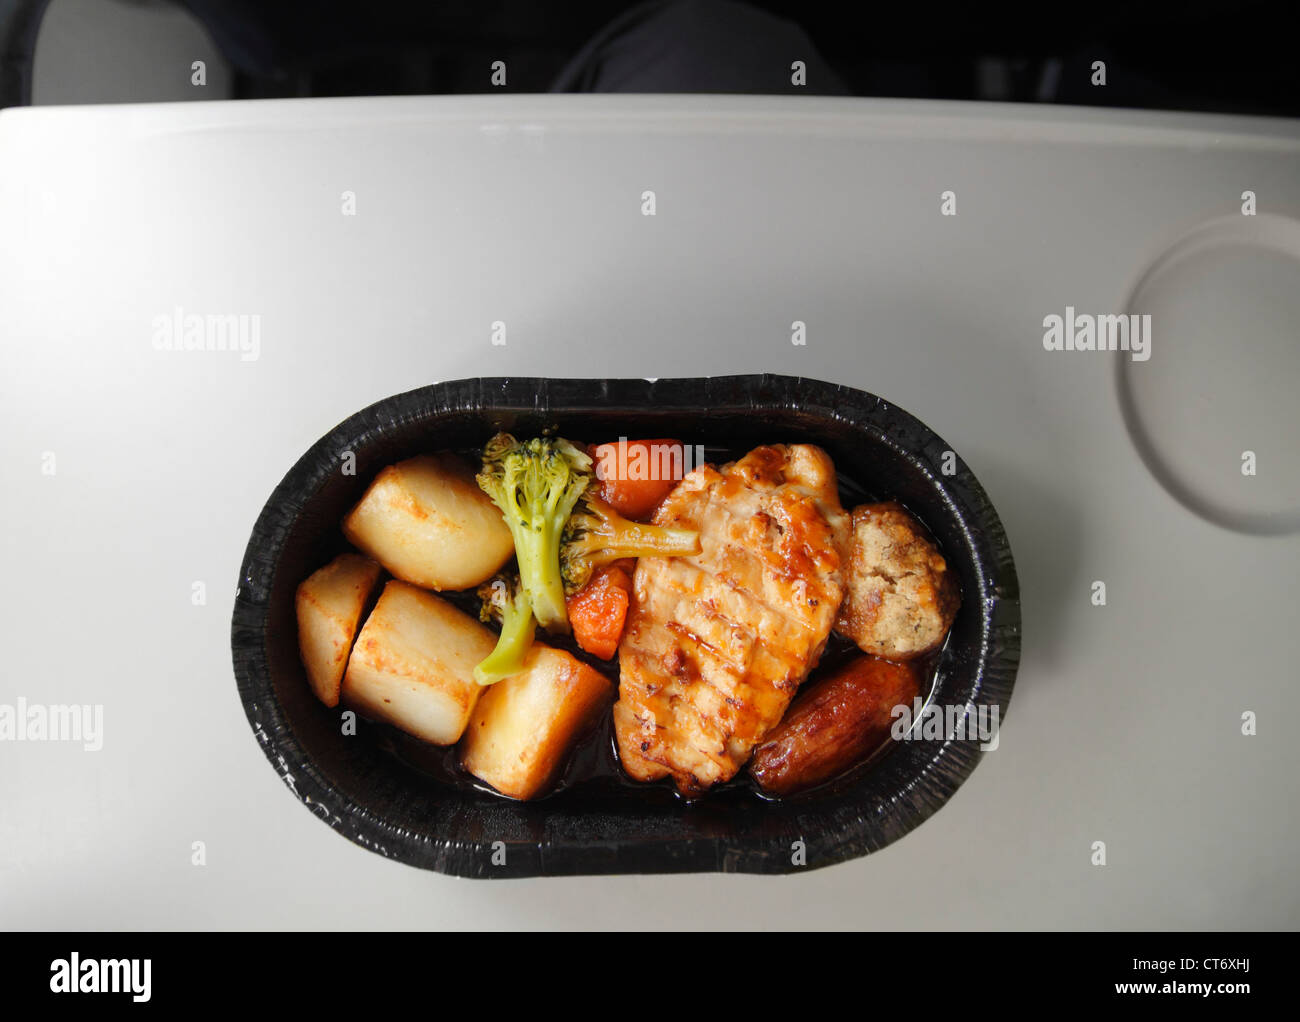 Airline in flight meal on Thomas Cook charter flight. - Stock Image